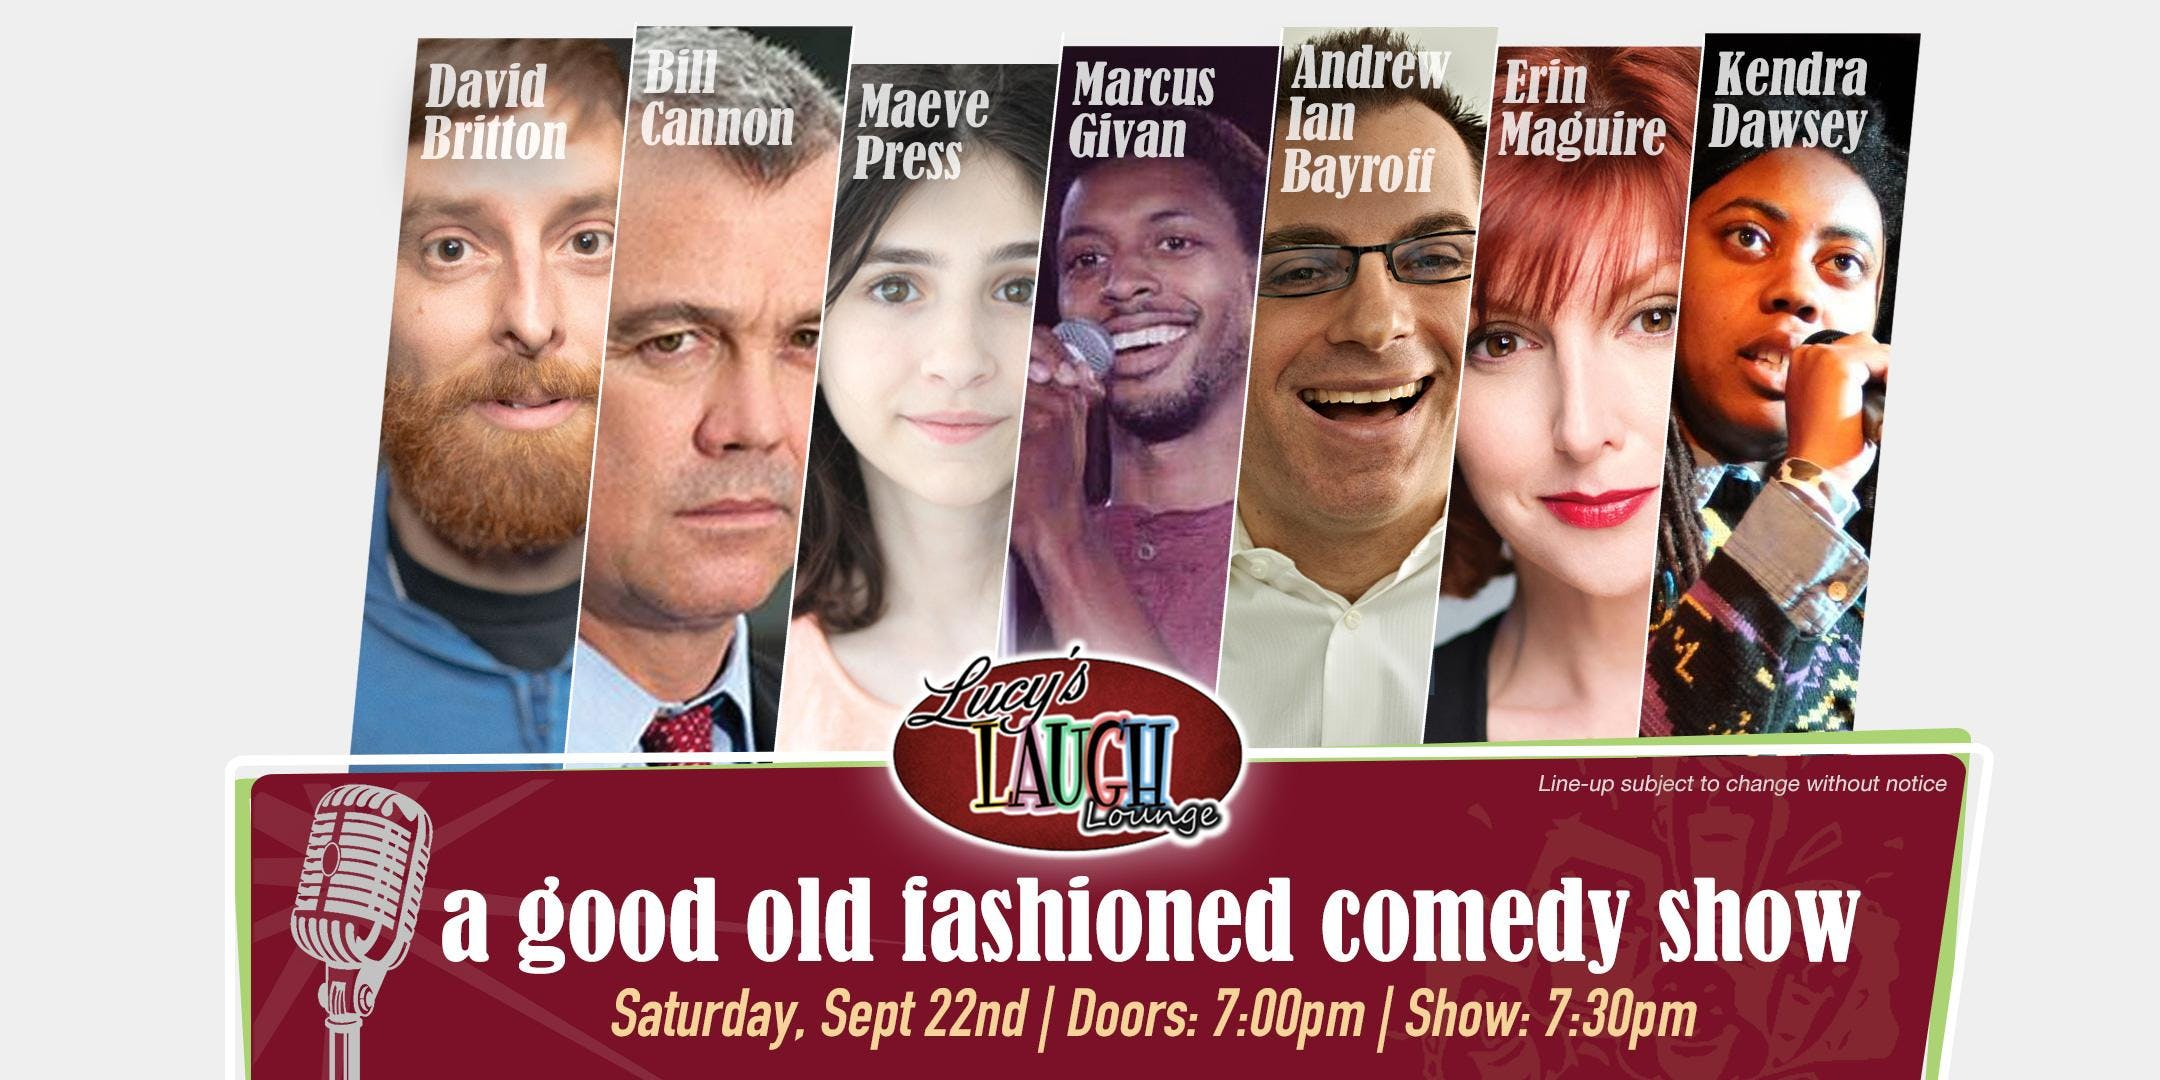 A Good Old Fashioned Comedy Show @ Lucy's Lau